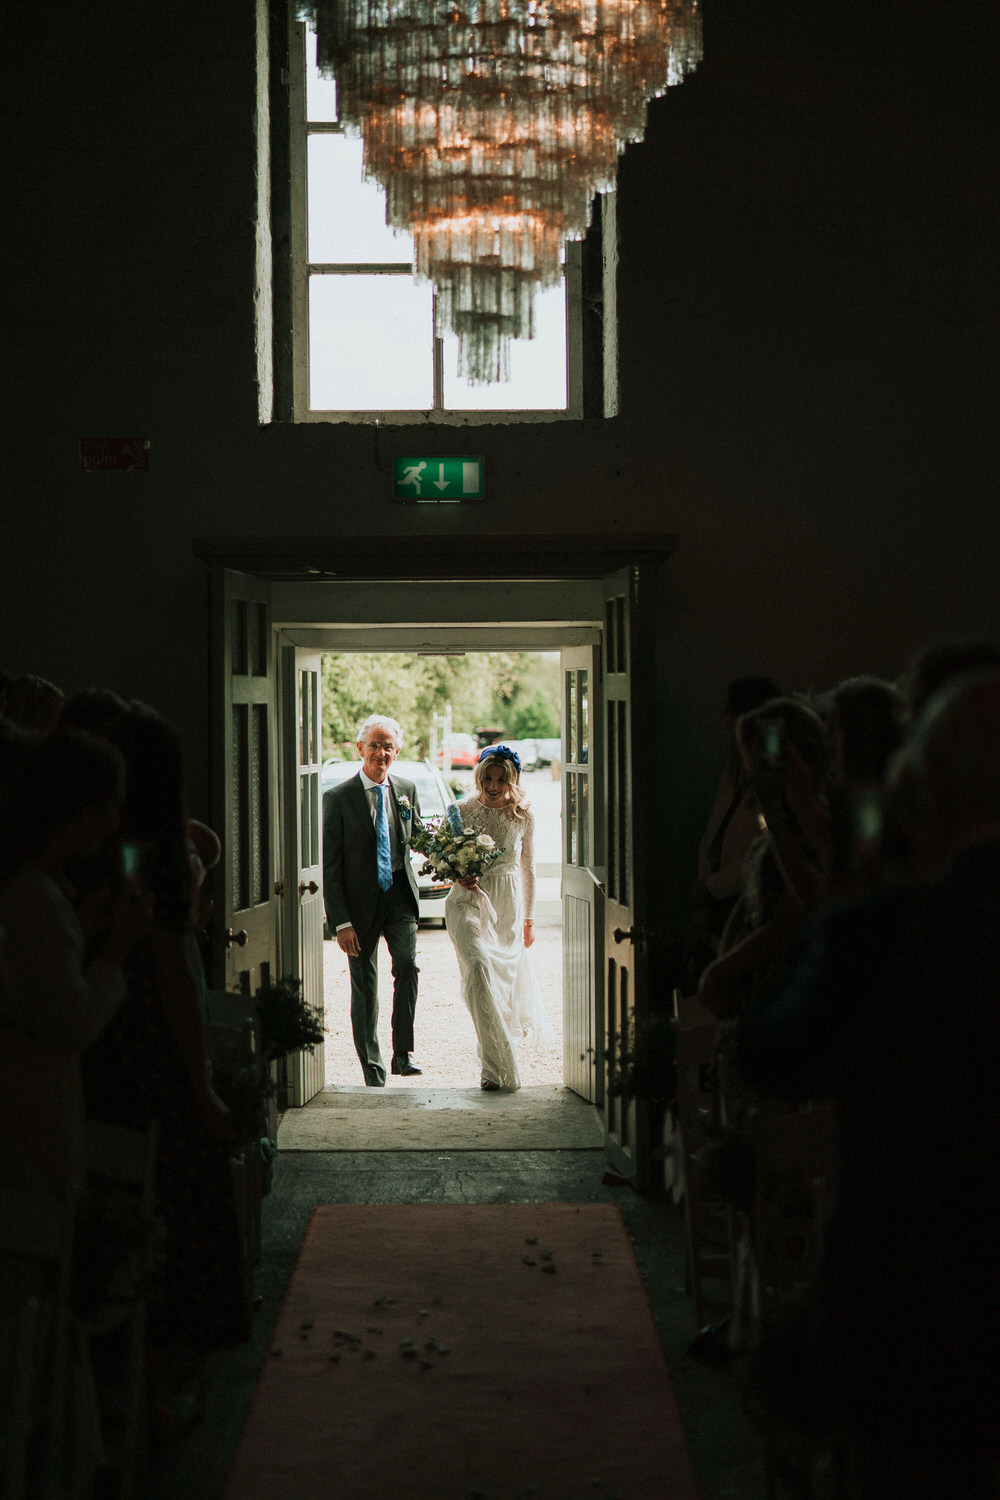 The Millhouse wedding ceremony | C&C - Irish wedding 53